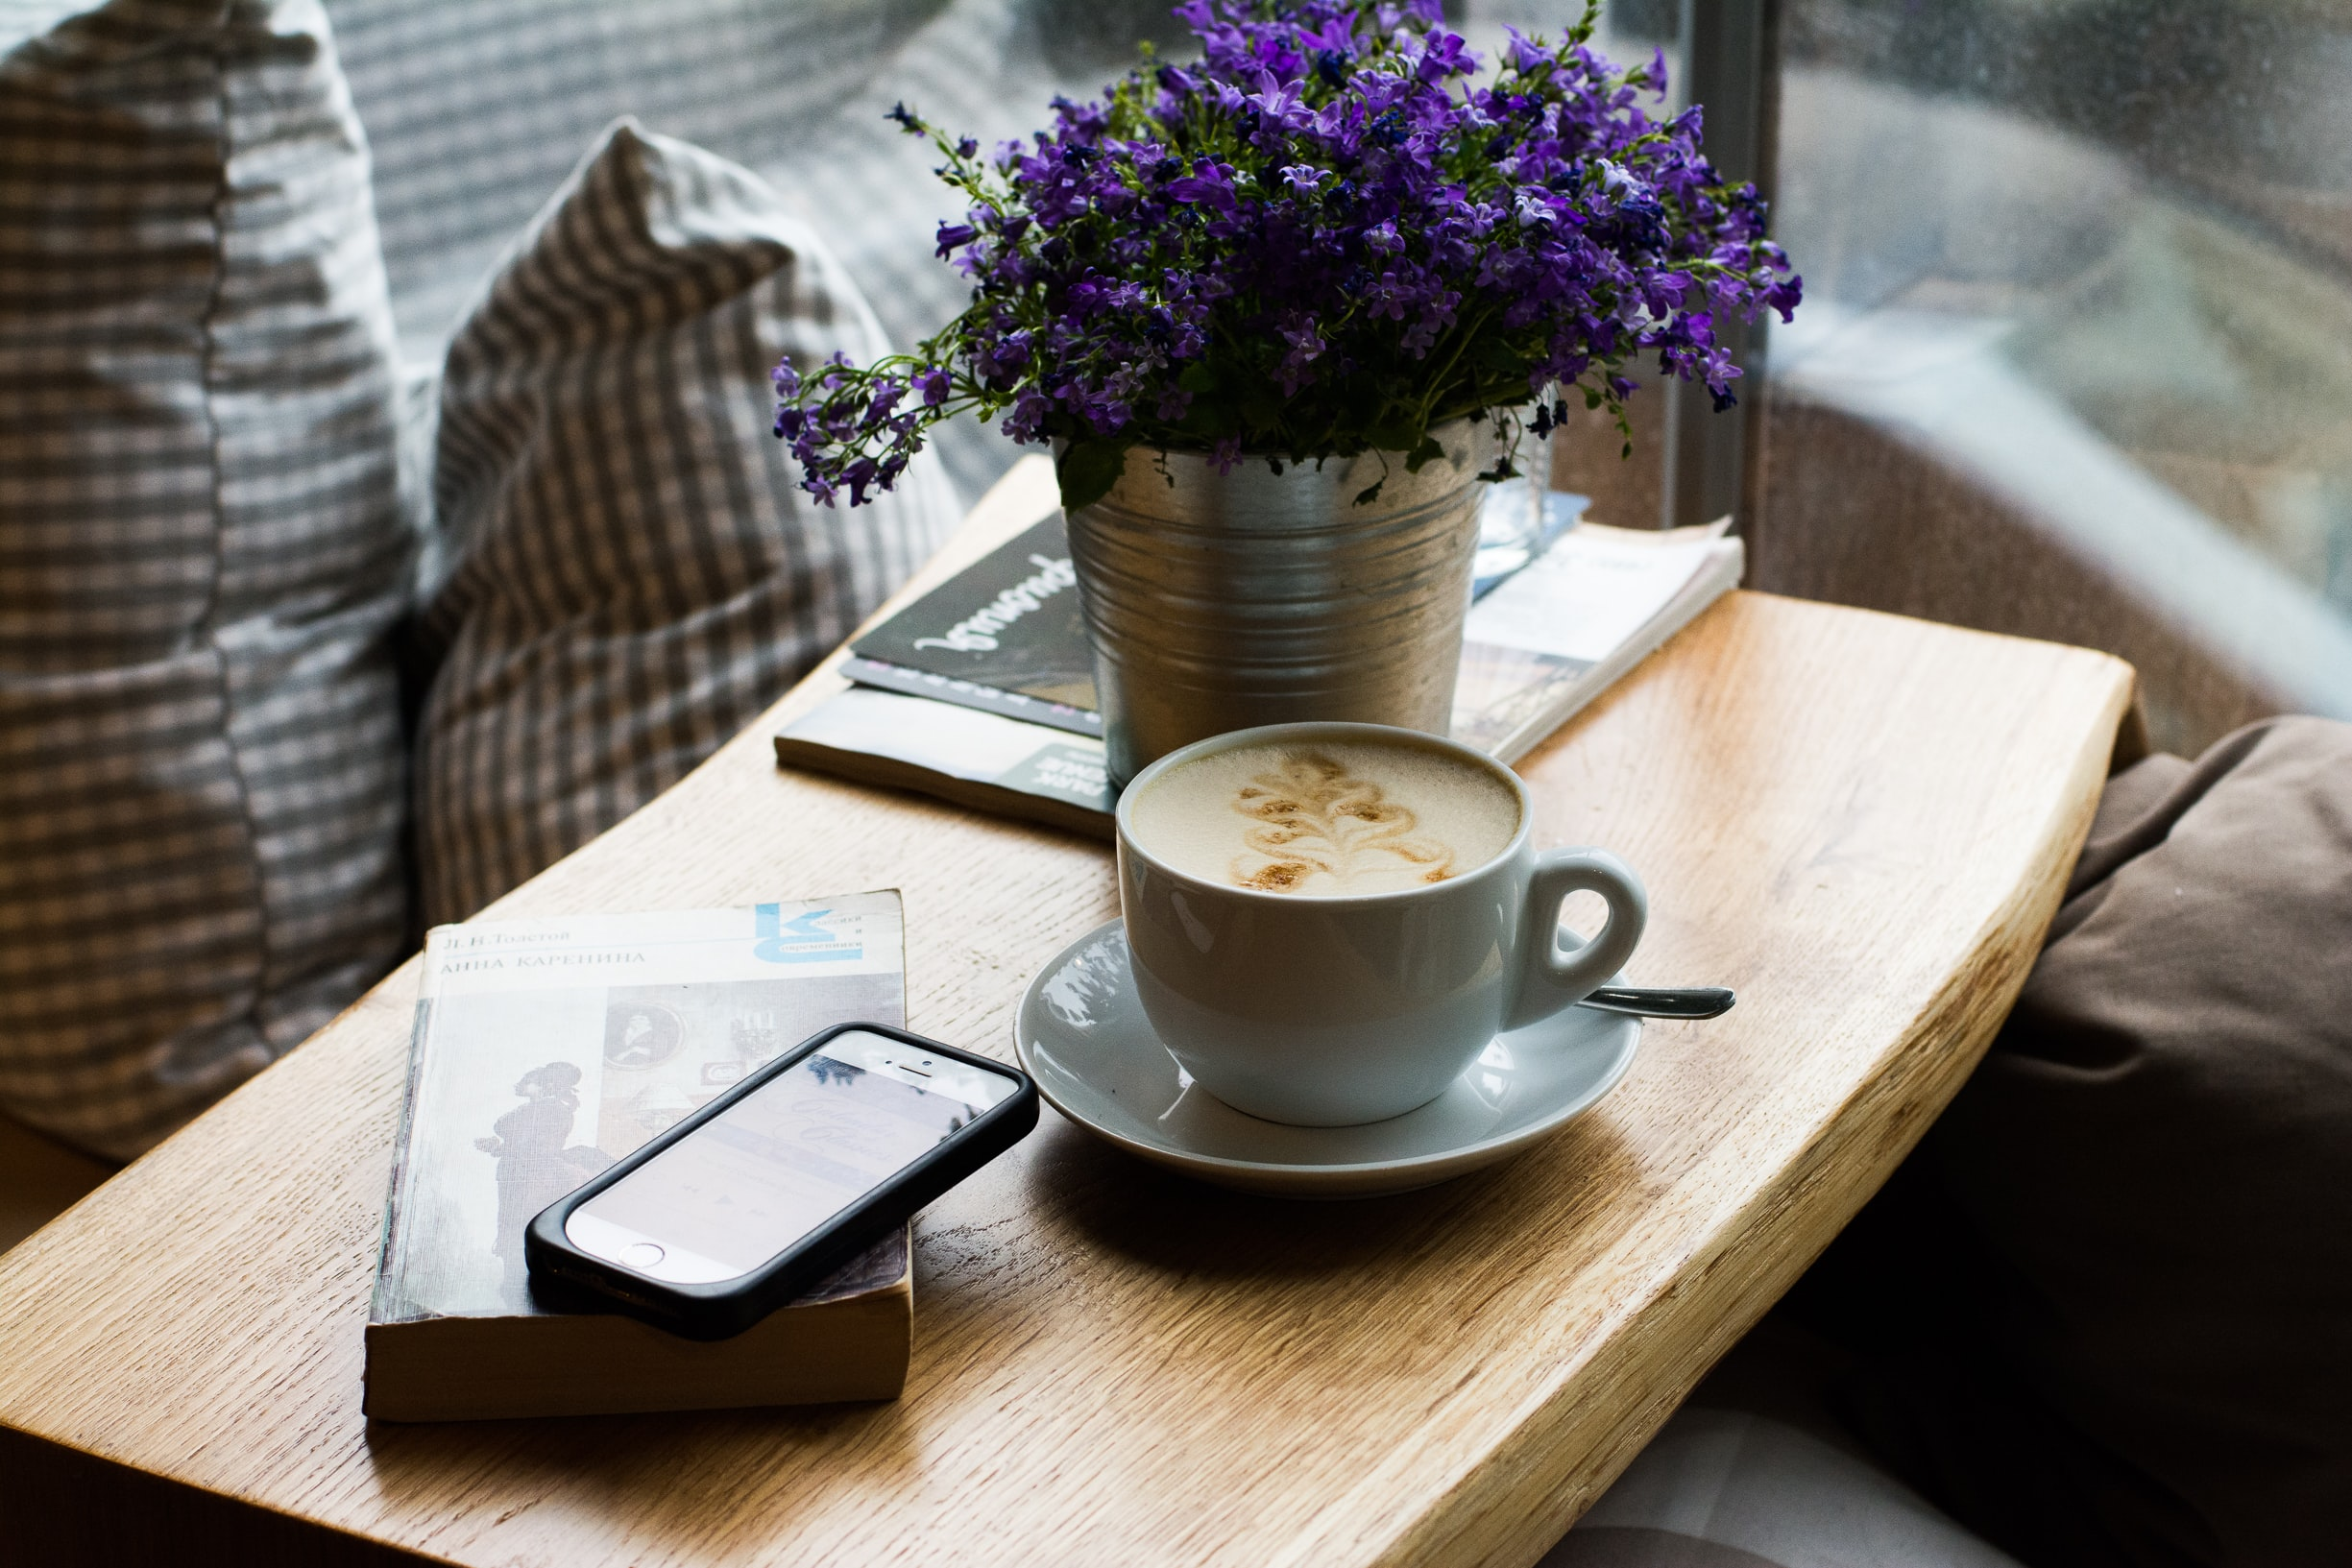 A cup of coffee with latte art on a coffee table next to an iPhone, a purple bouquet and a book